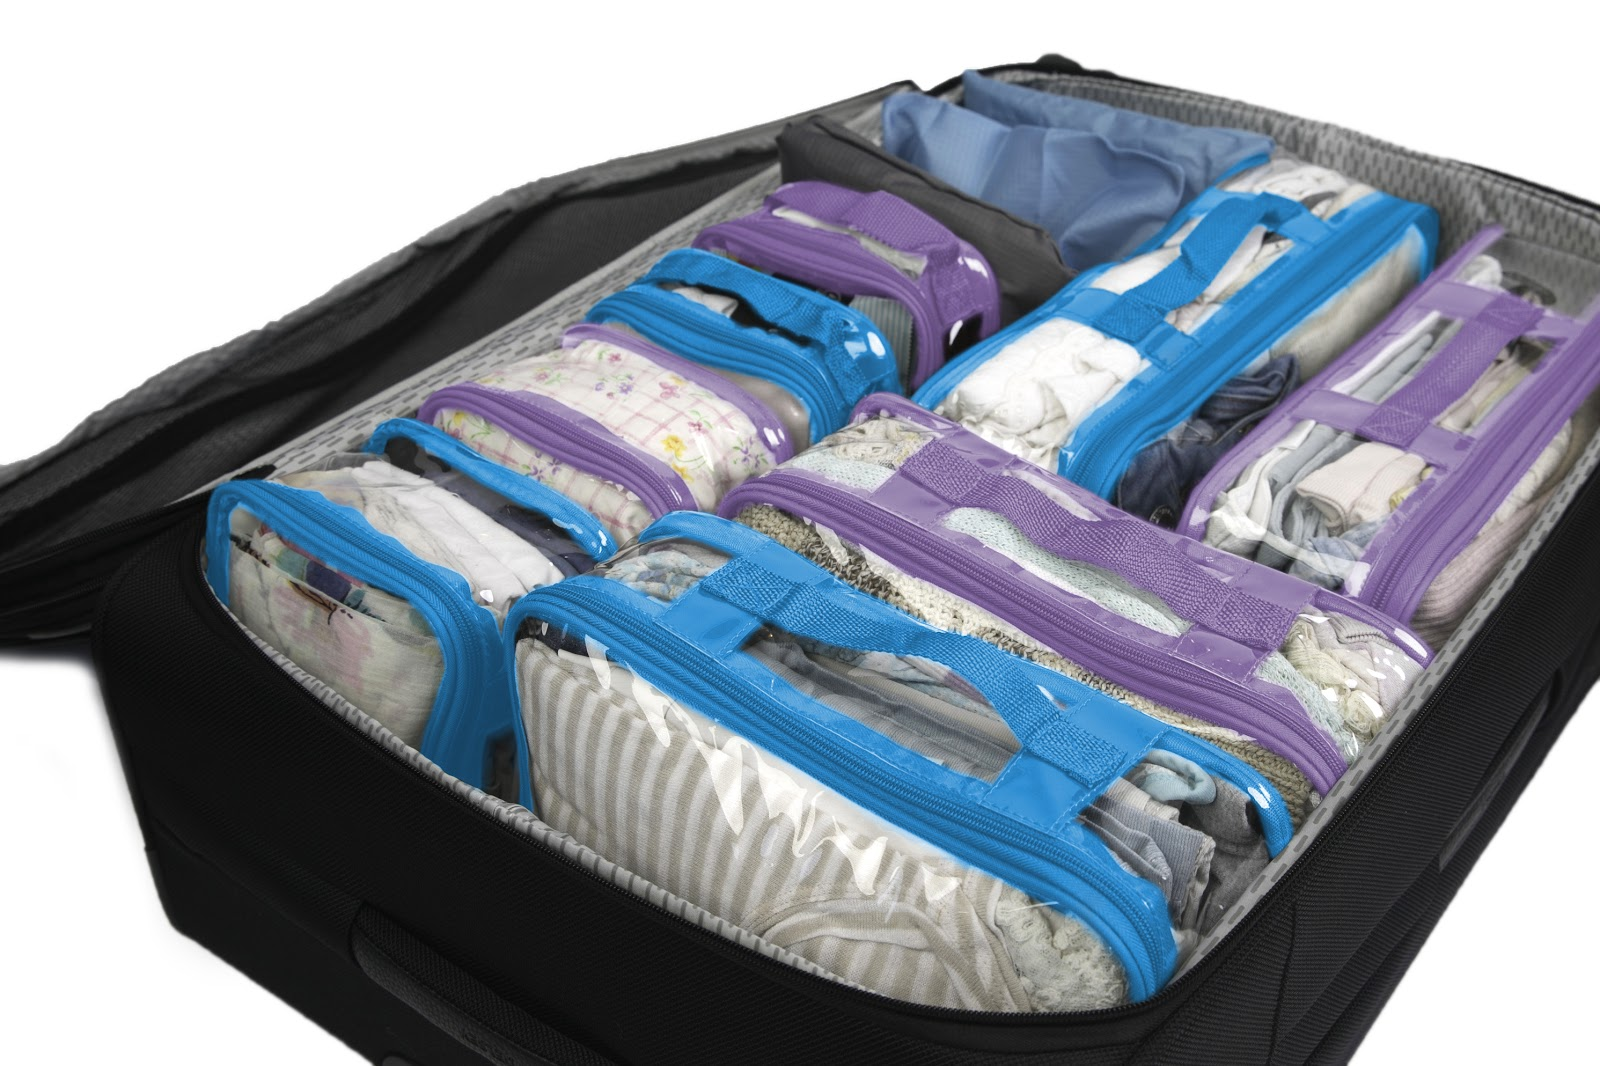 Packing cubes inside holiday suitcase